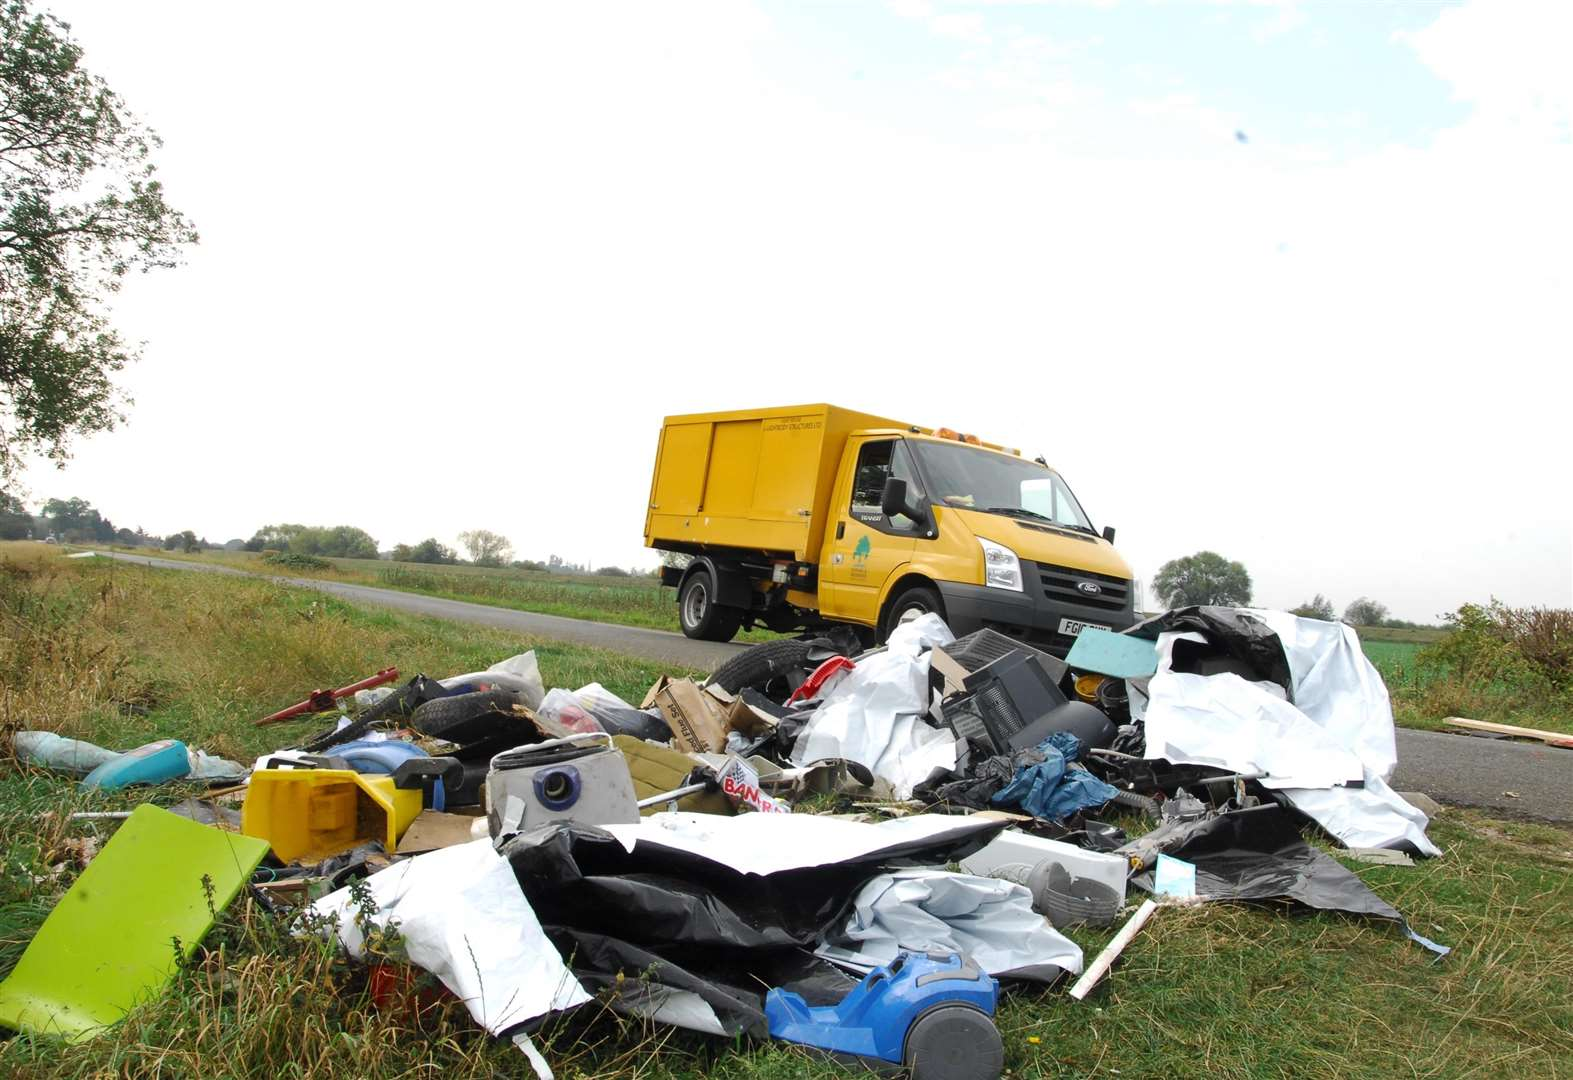 Newark and Sherwood fly-tipping figures released